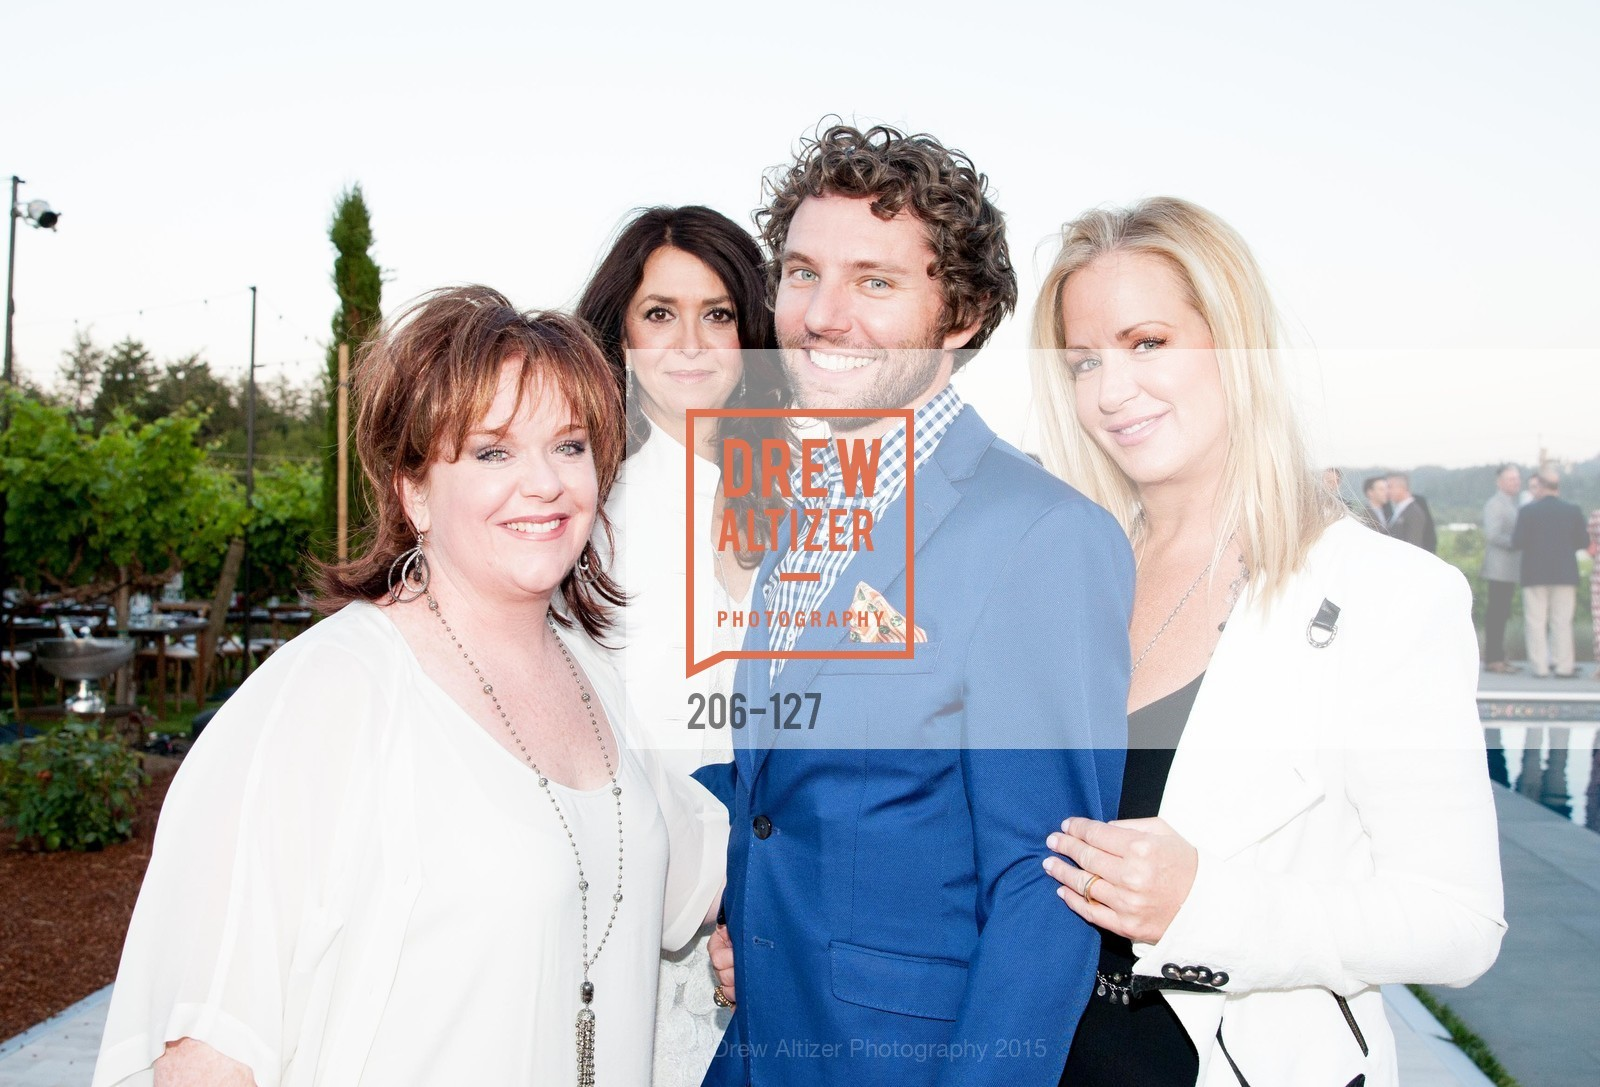 Wendy Walters, Tracey Atwood, Drew Parker, Stacy Walters, An Evening in the Vineyard hosted by JACK CALHOUN & TRENT NORRIS, Jack Calhoun & Trent Norris Vineyard. 3393 Dry Creek Road, Healdsburg CA 95448, May 22nd, 2015,Drew Altizer, Drew Altizer Photography, full-service agency, private events, San Francisco photographer, photographer california